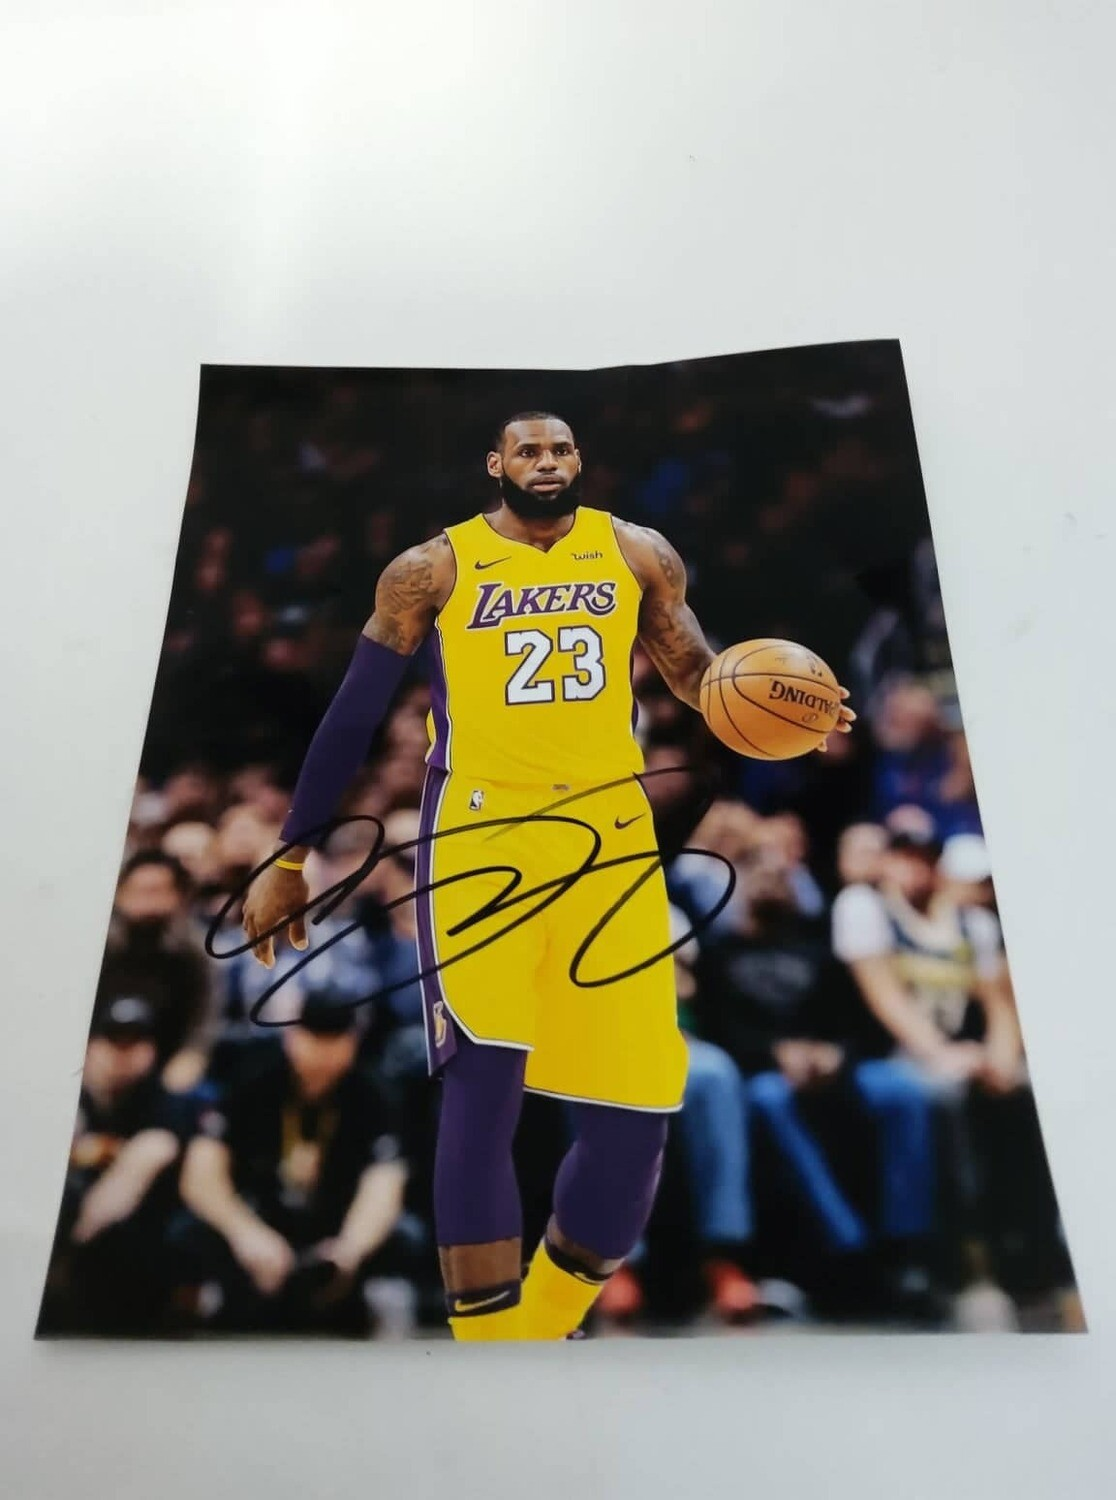 FOTO LEBRON JAMES LOS ANGELES LAKERS Autografata Signed + COA Photo LEBRON JAMES Autografato Signed